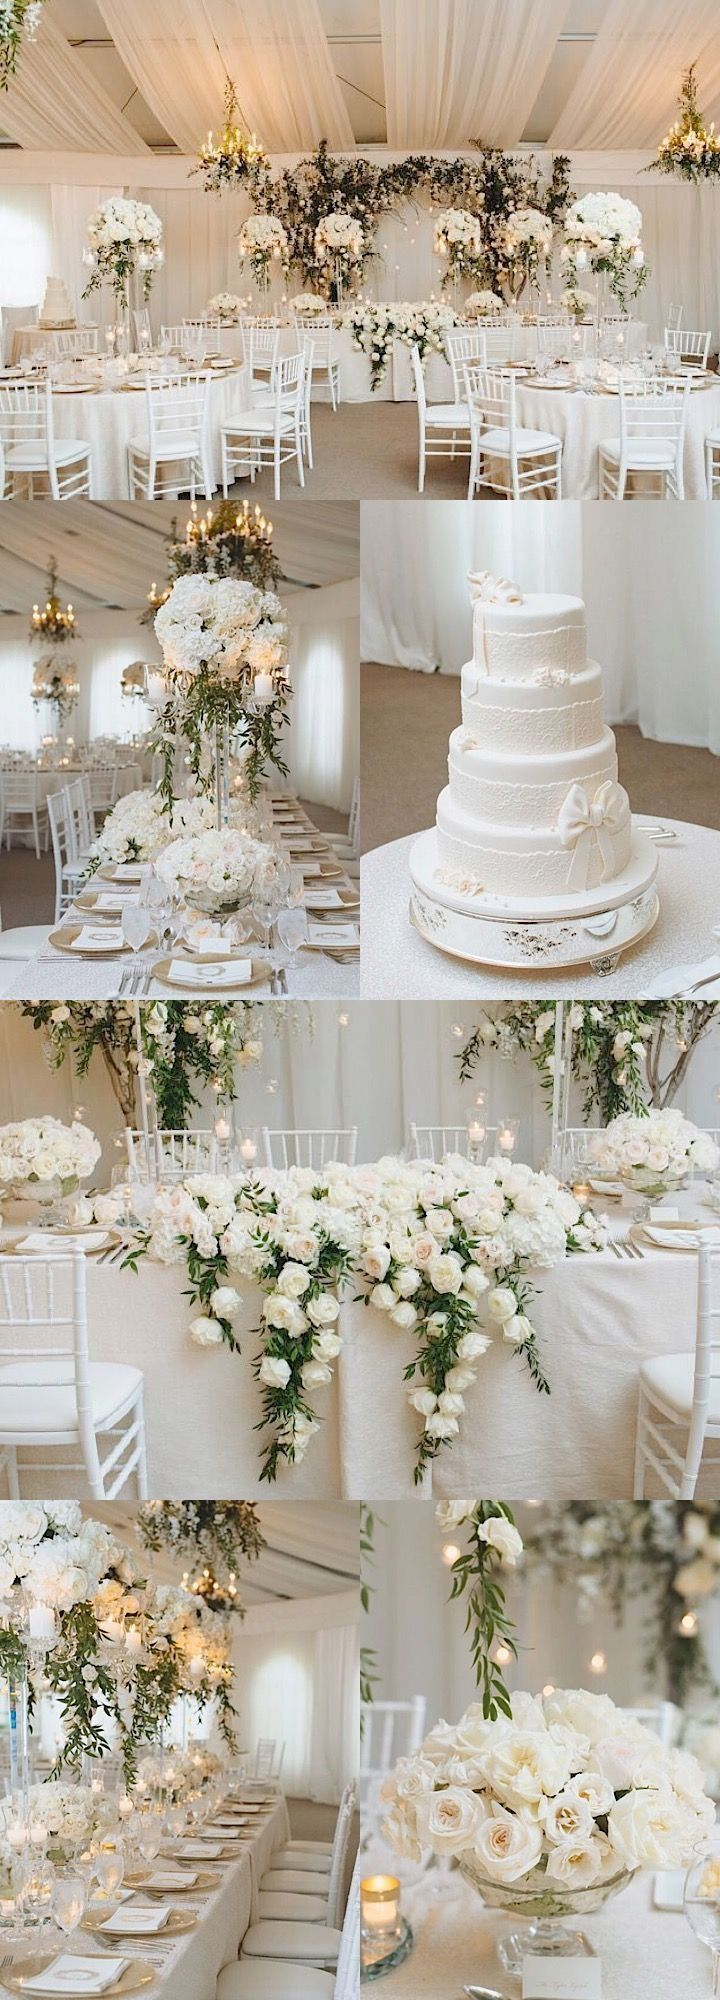 Wedding decorations near me october 2018 Pin by London Howe on October    Pinterest  Head tables